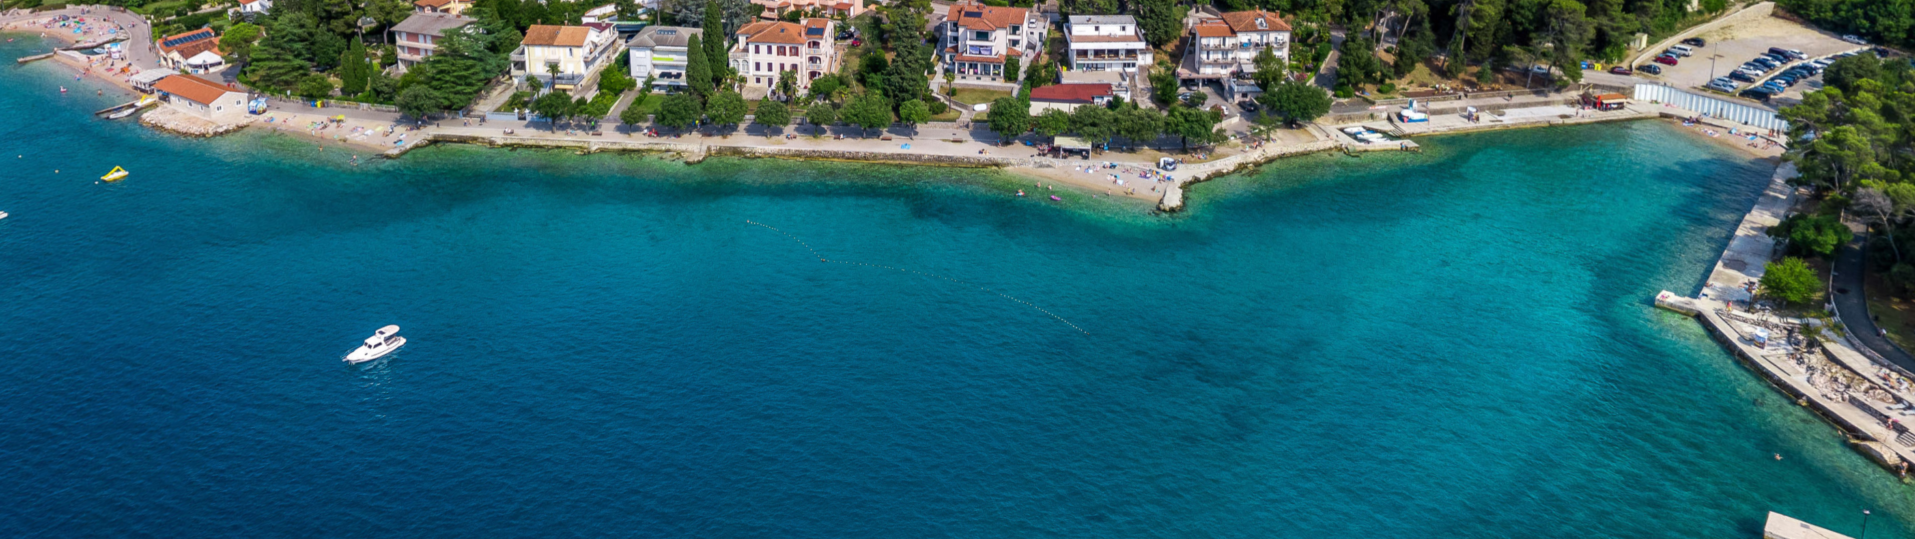 Excursions on the island of Krk